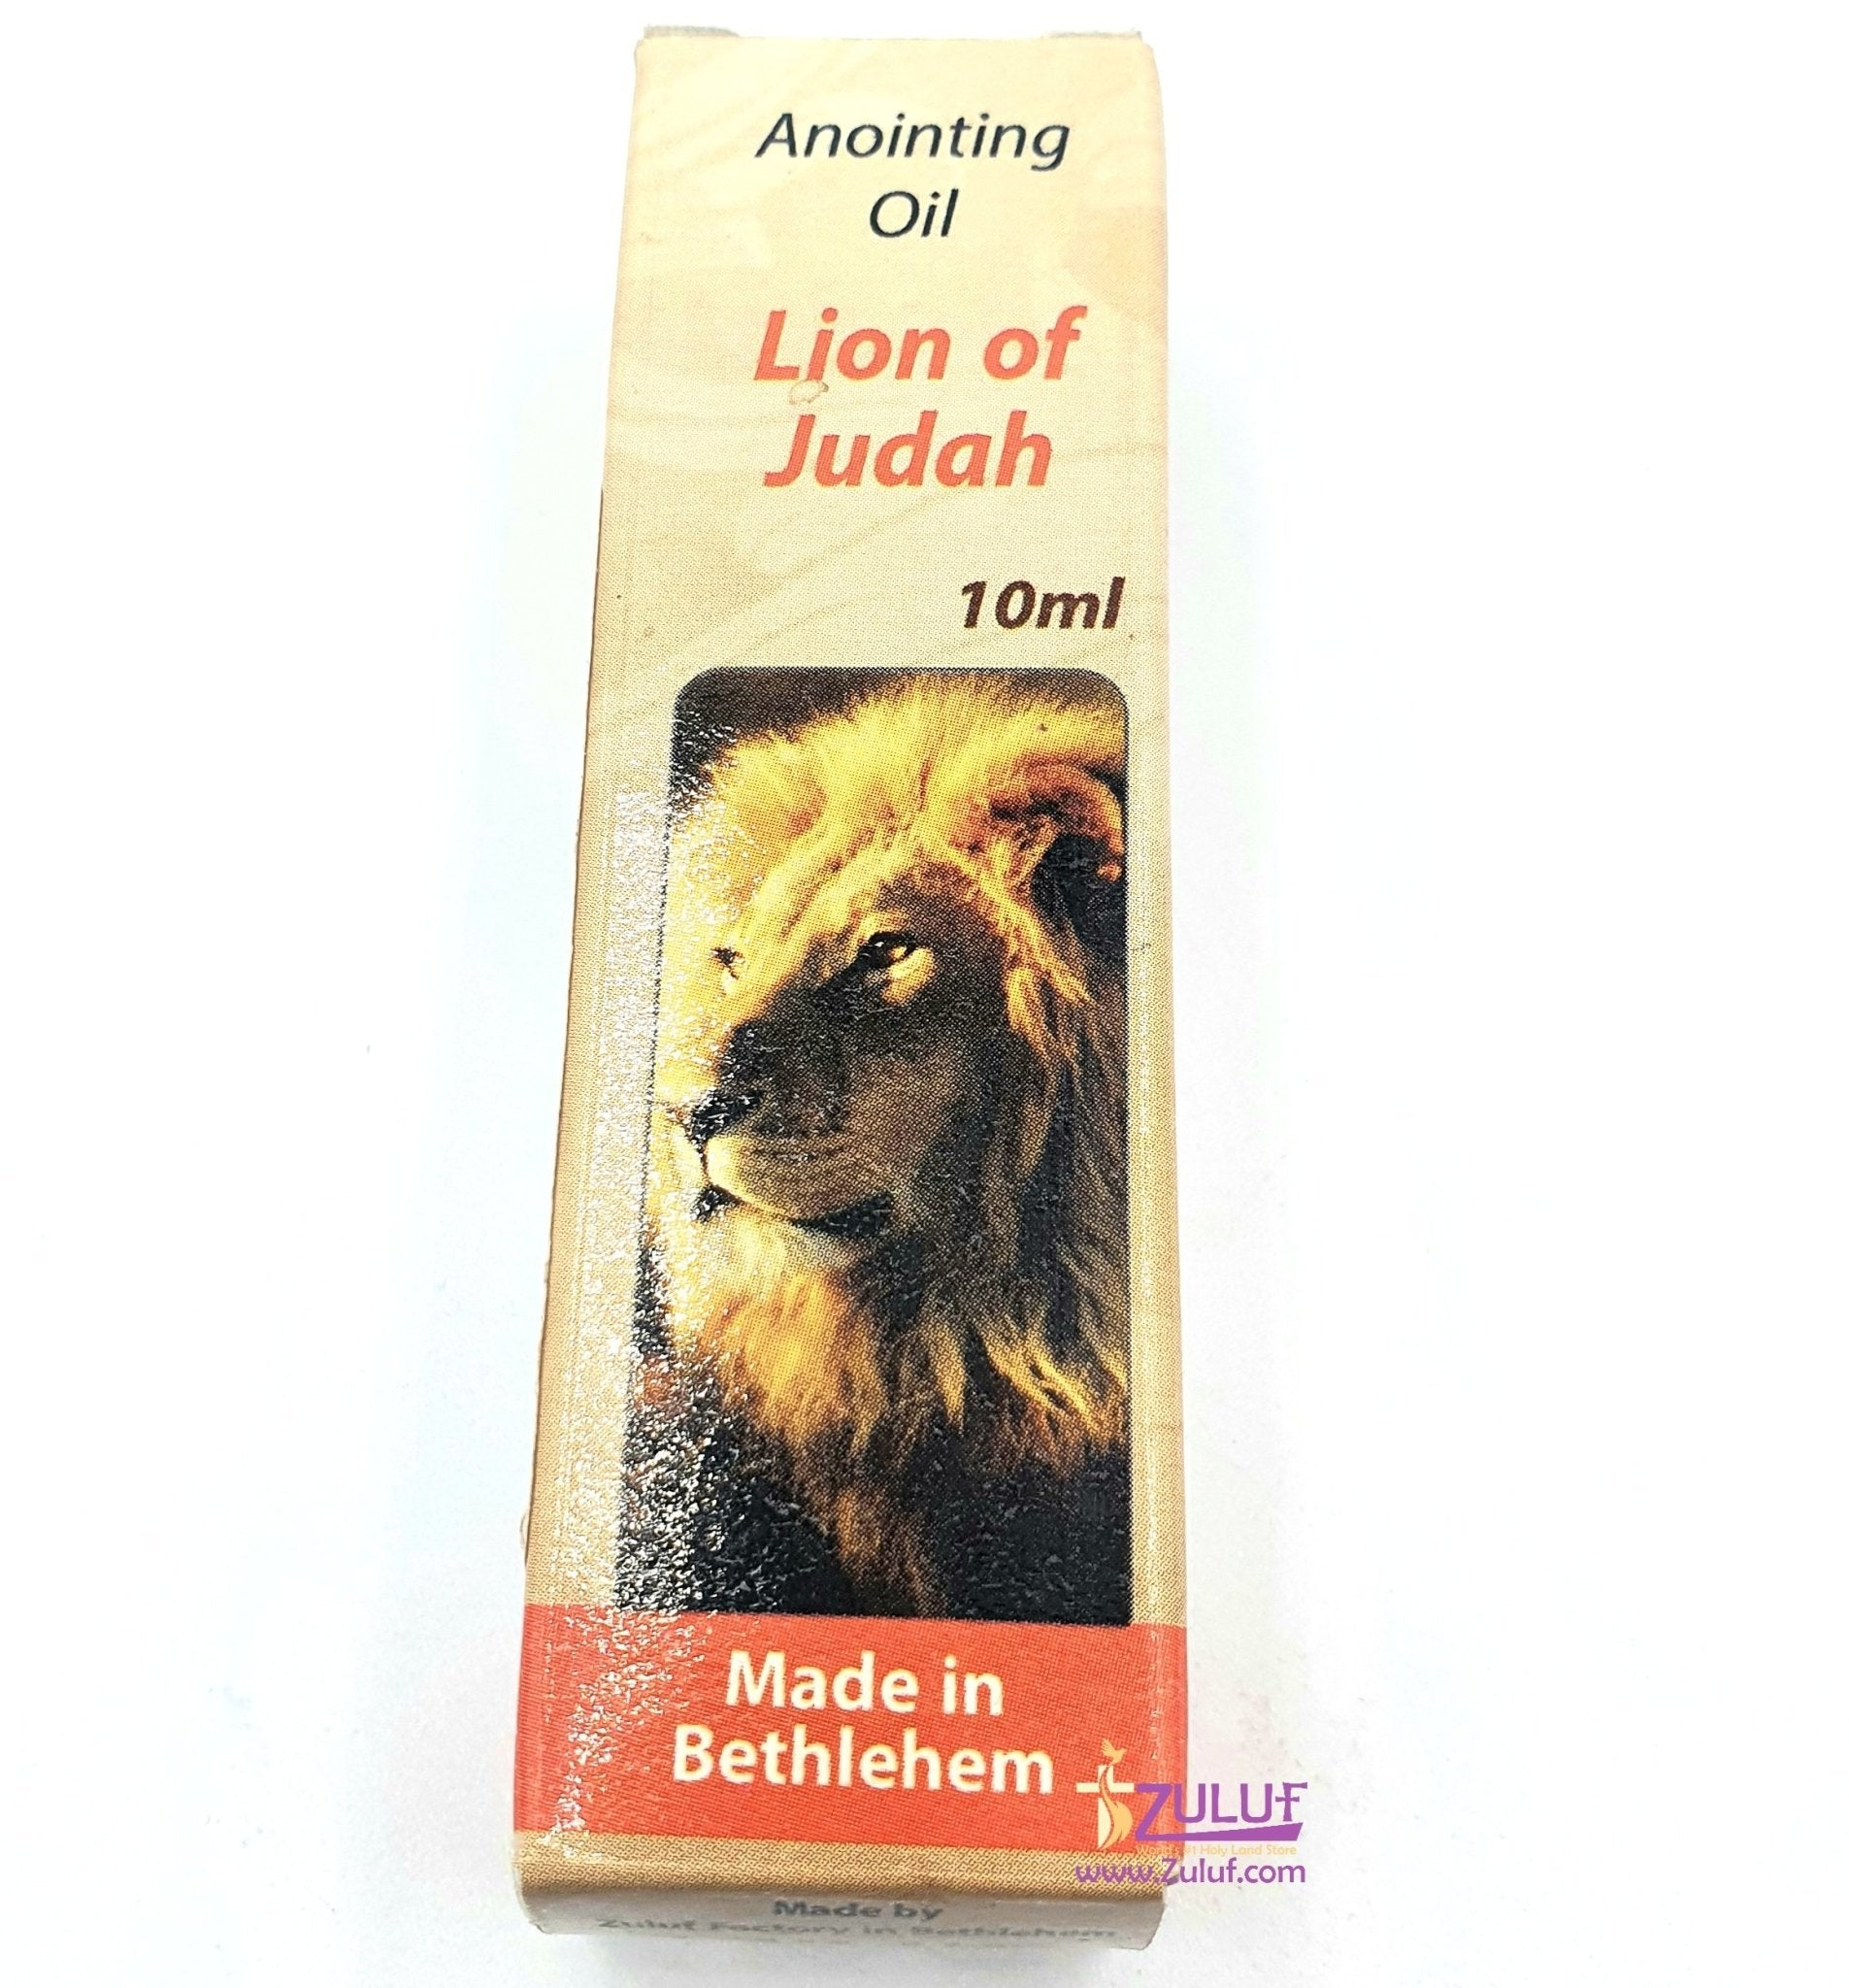 Lion of Judah Anointing Oil Zuluf - PER007 - Zuluf